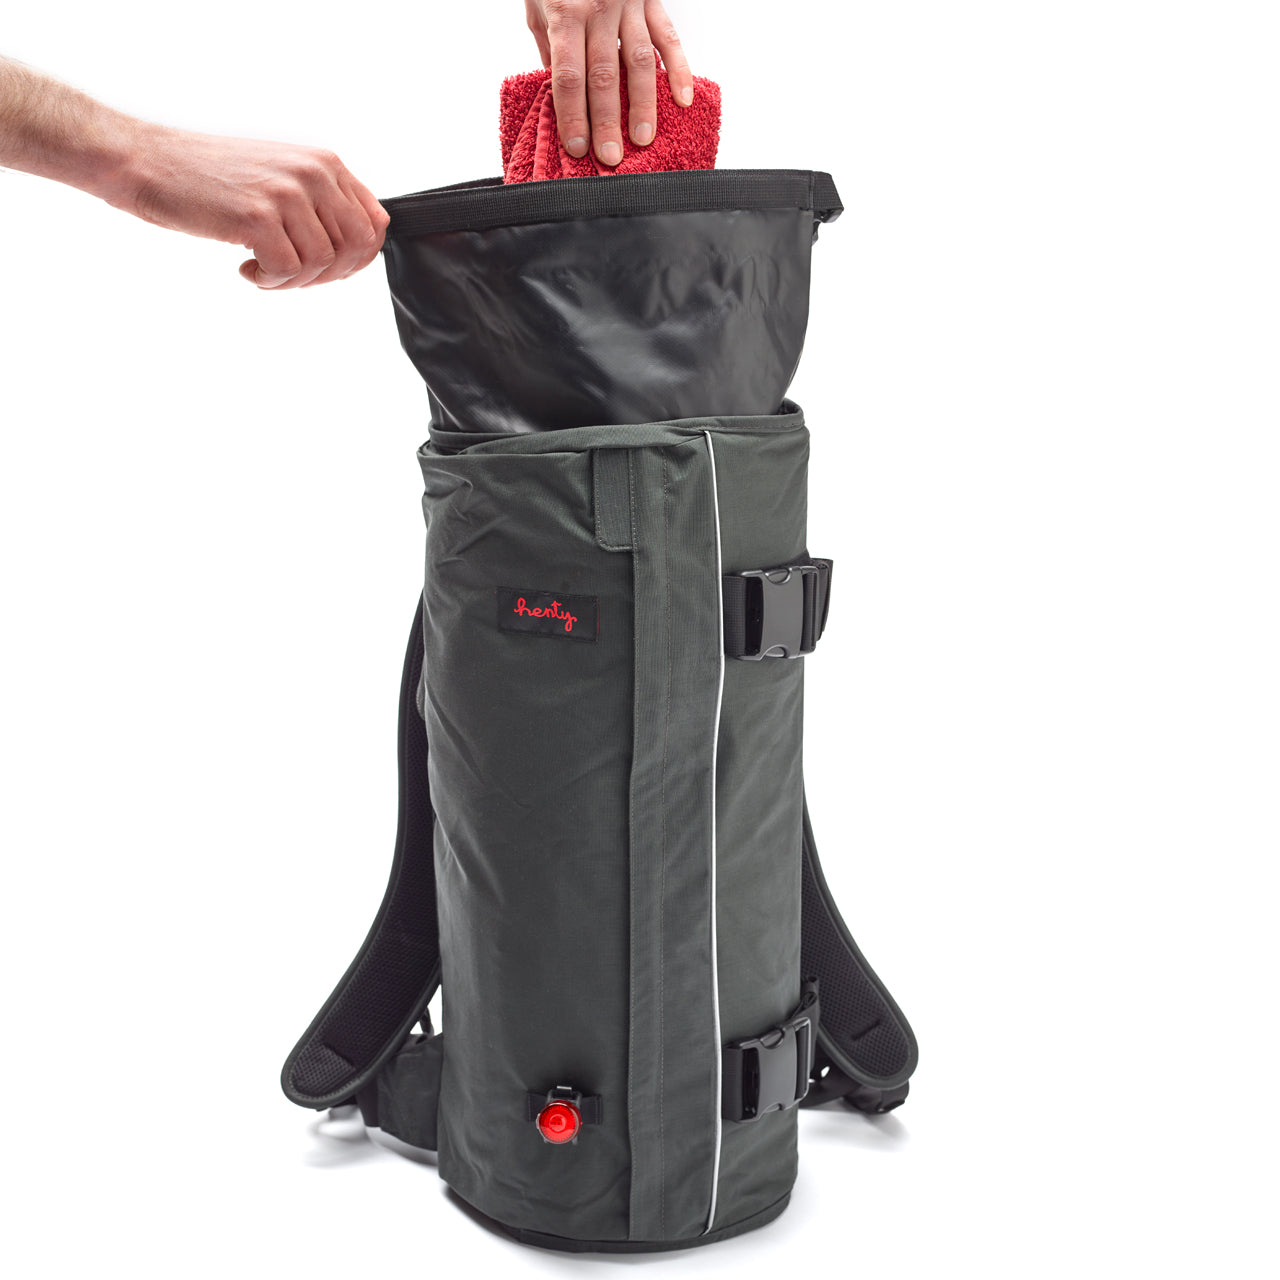 Henty Wingman Backpack - Find Your Feet Australia Hobart Launceston Tasmania